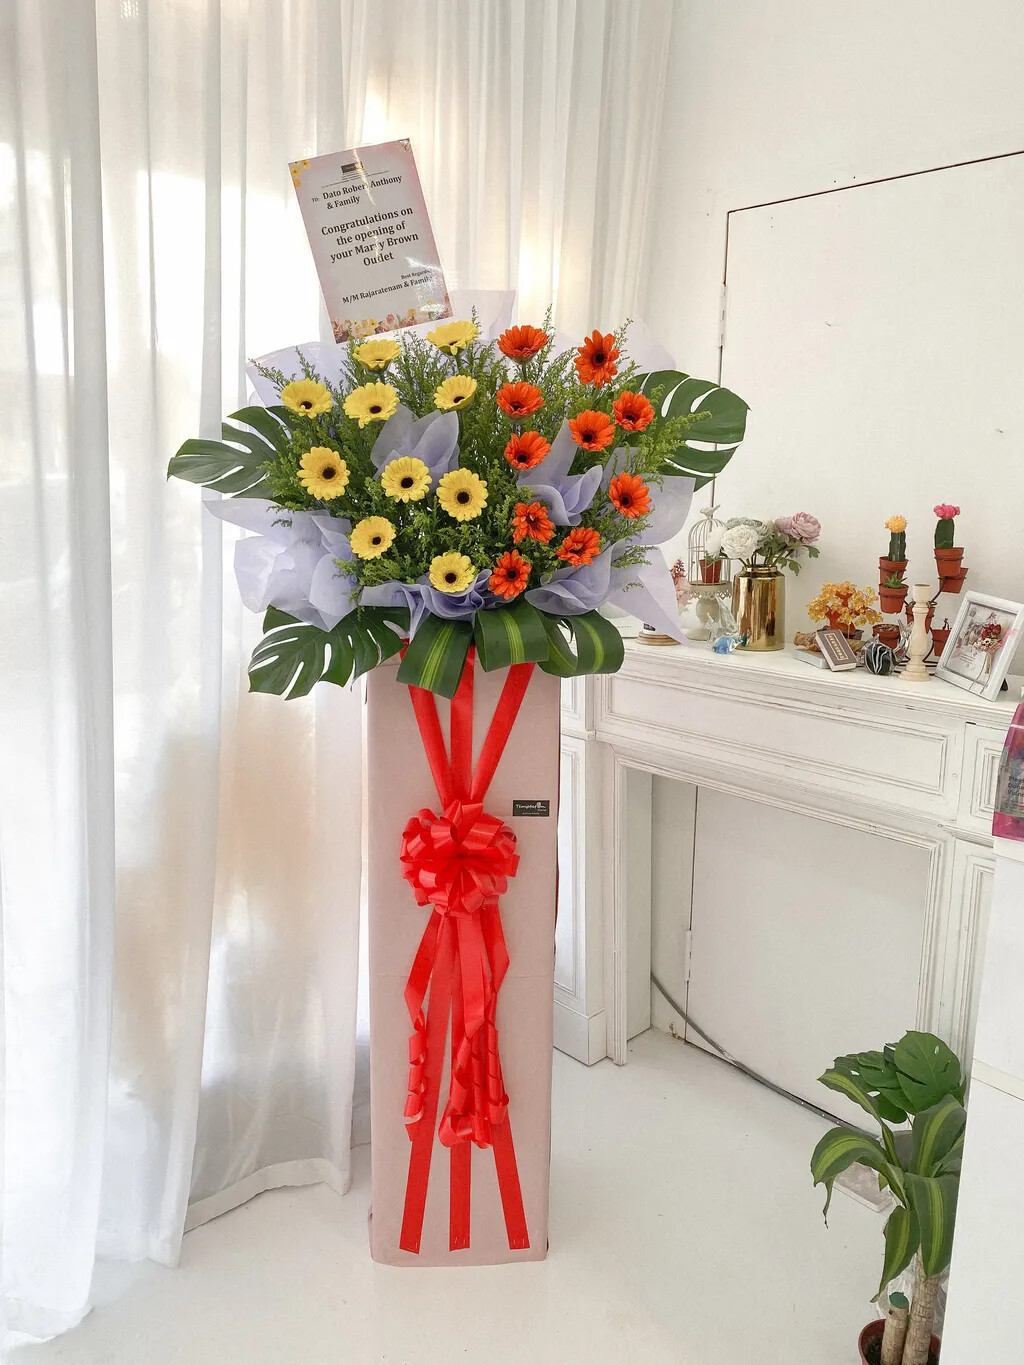 Warmest Grand Opening Flower Stand (By: Temptation Florist from Seremban)